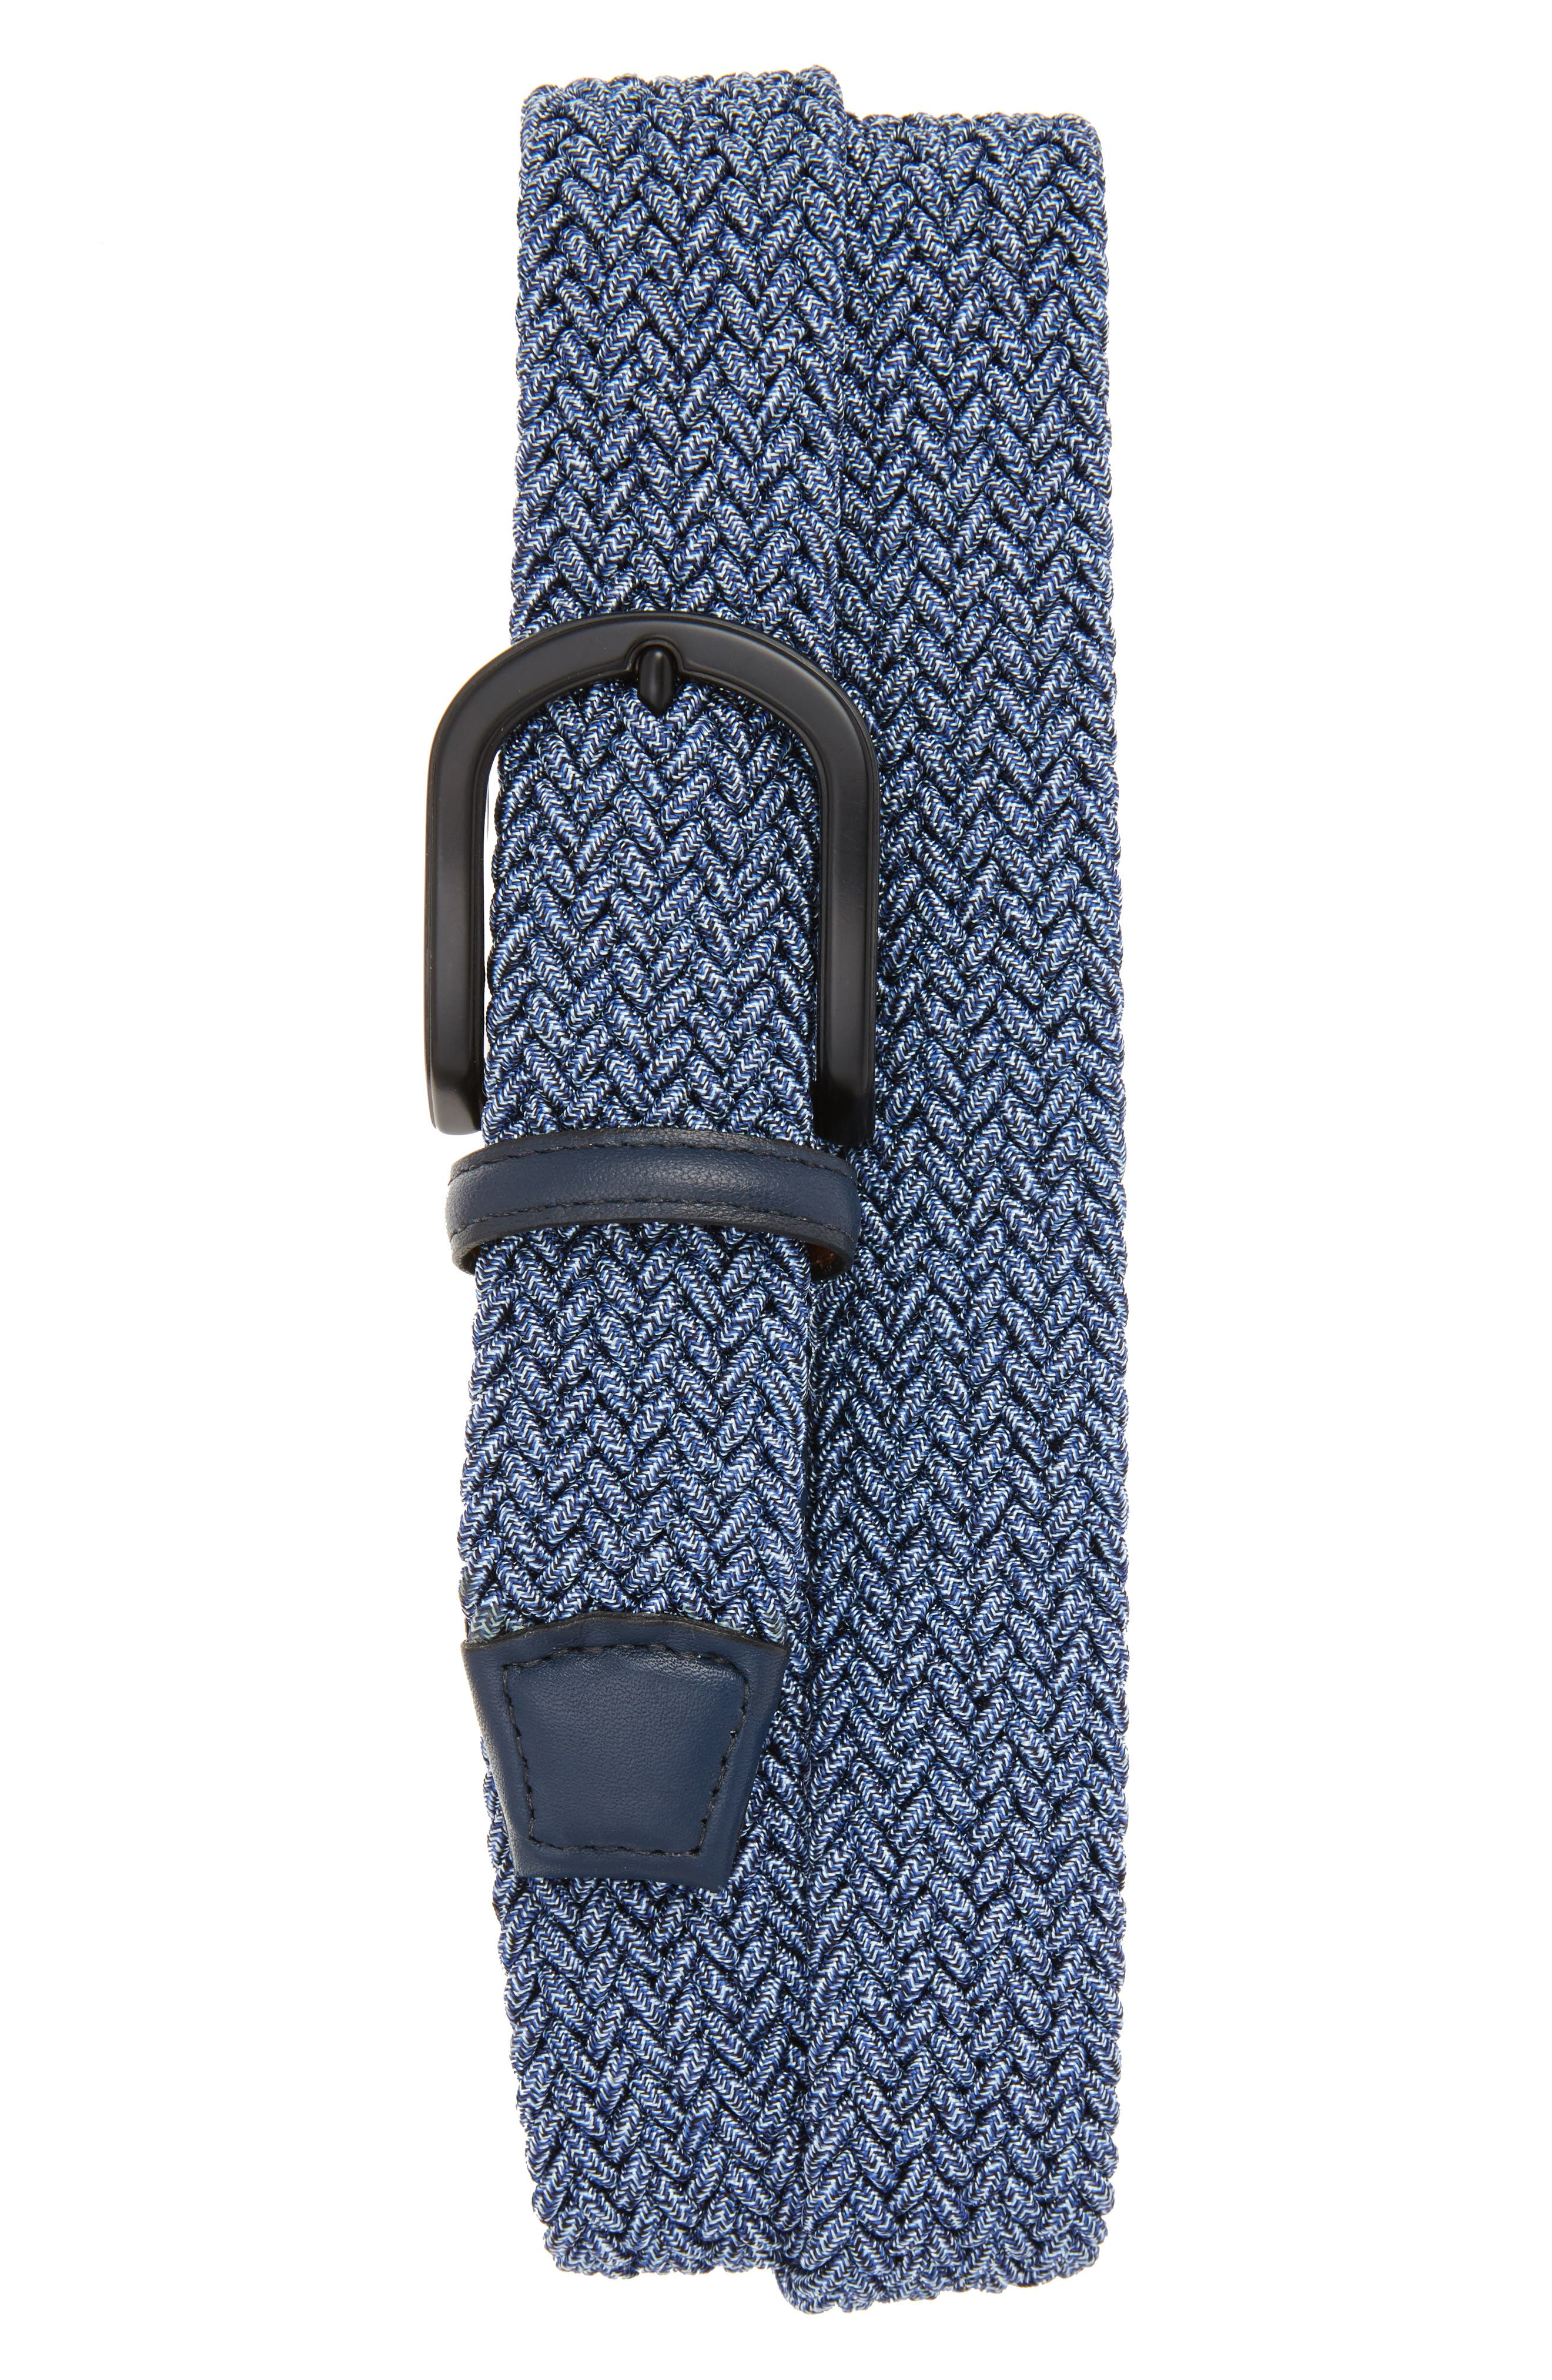 Braided Mélange Belts,                         Main,                         color, Navy